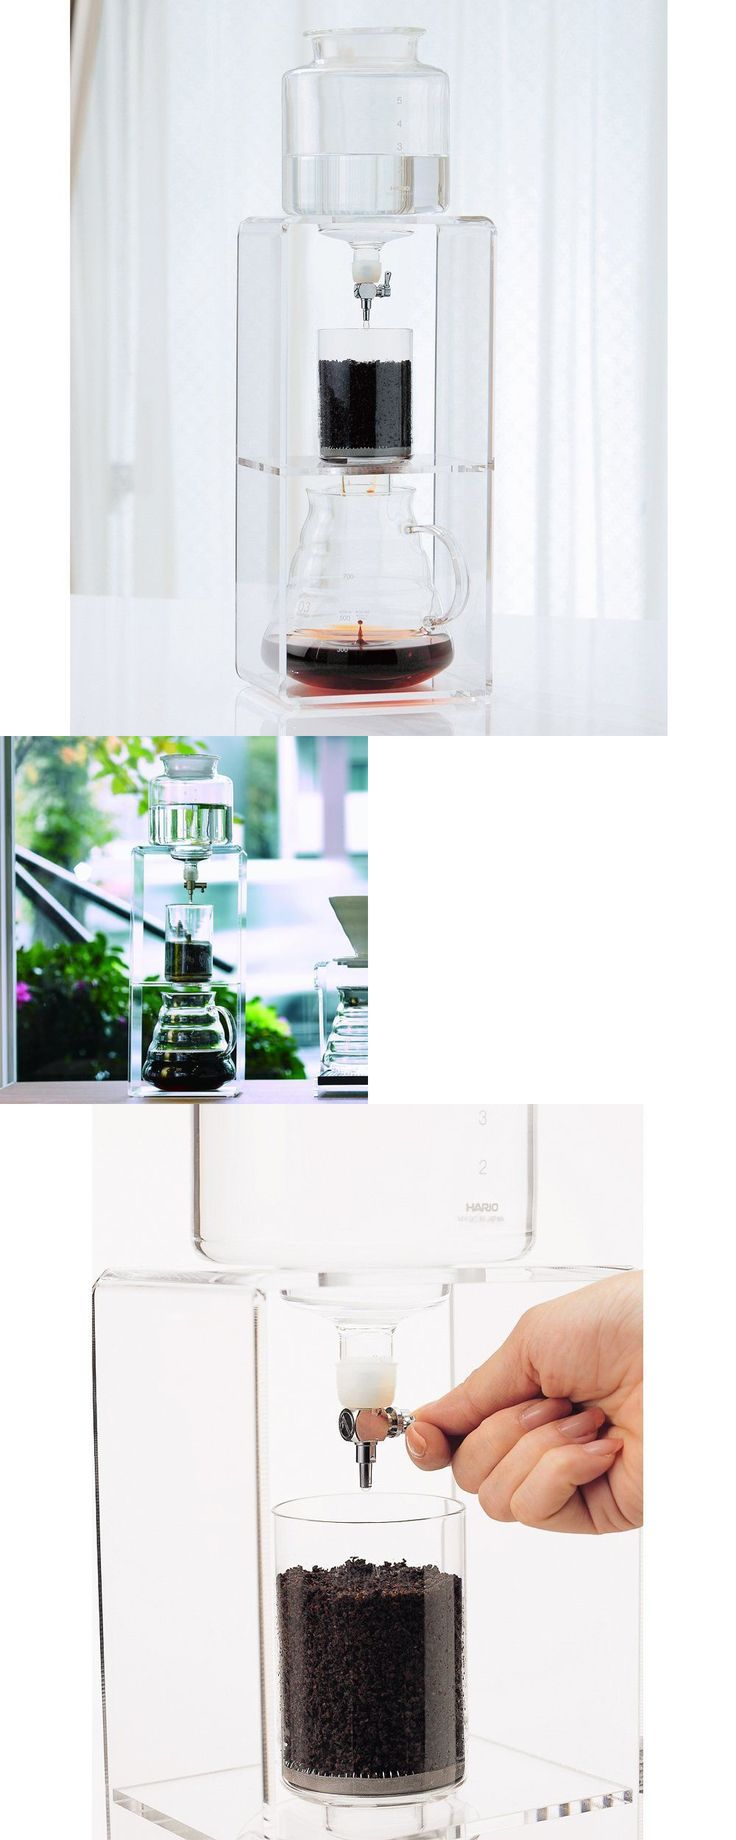 25+ best ideas about Cold drip coffee maker on Pinterest Cold drip, Drip coffee and Pipe diy ...